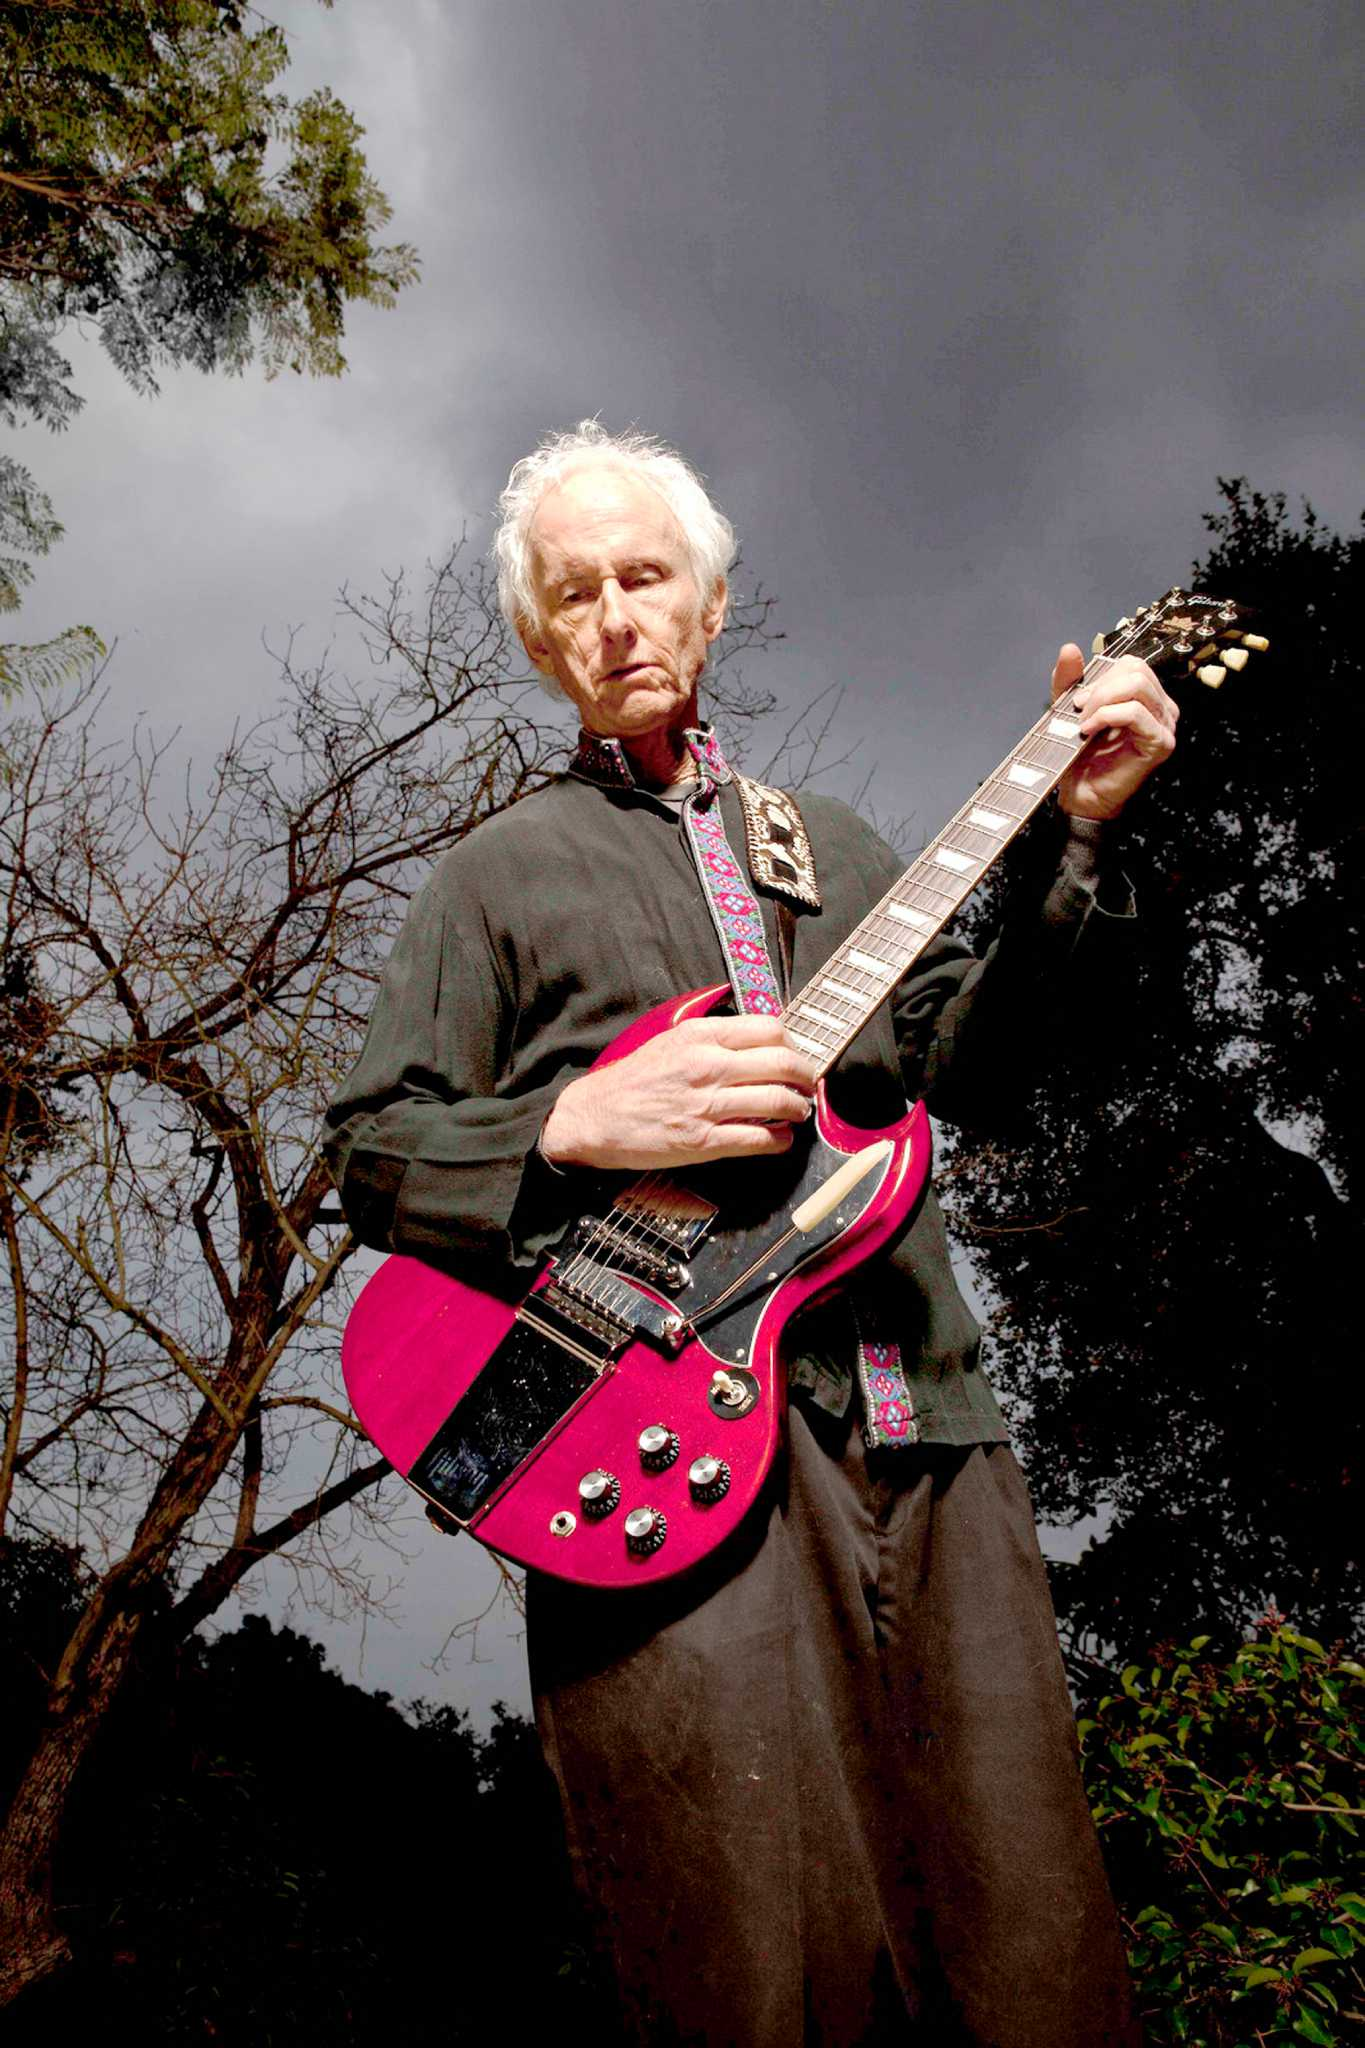 Pre Owned Cars >> Robby Krieger at The Egg